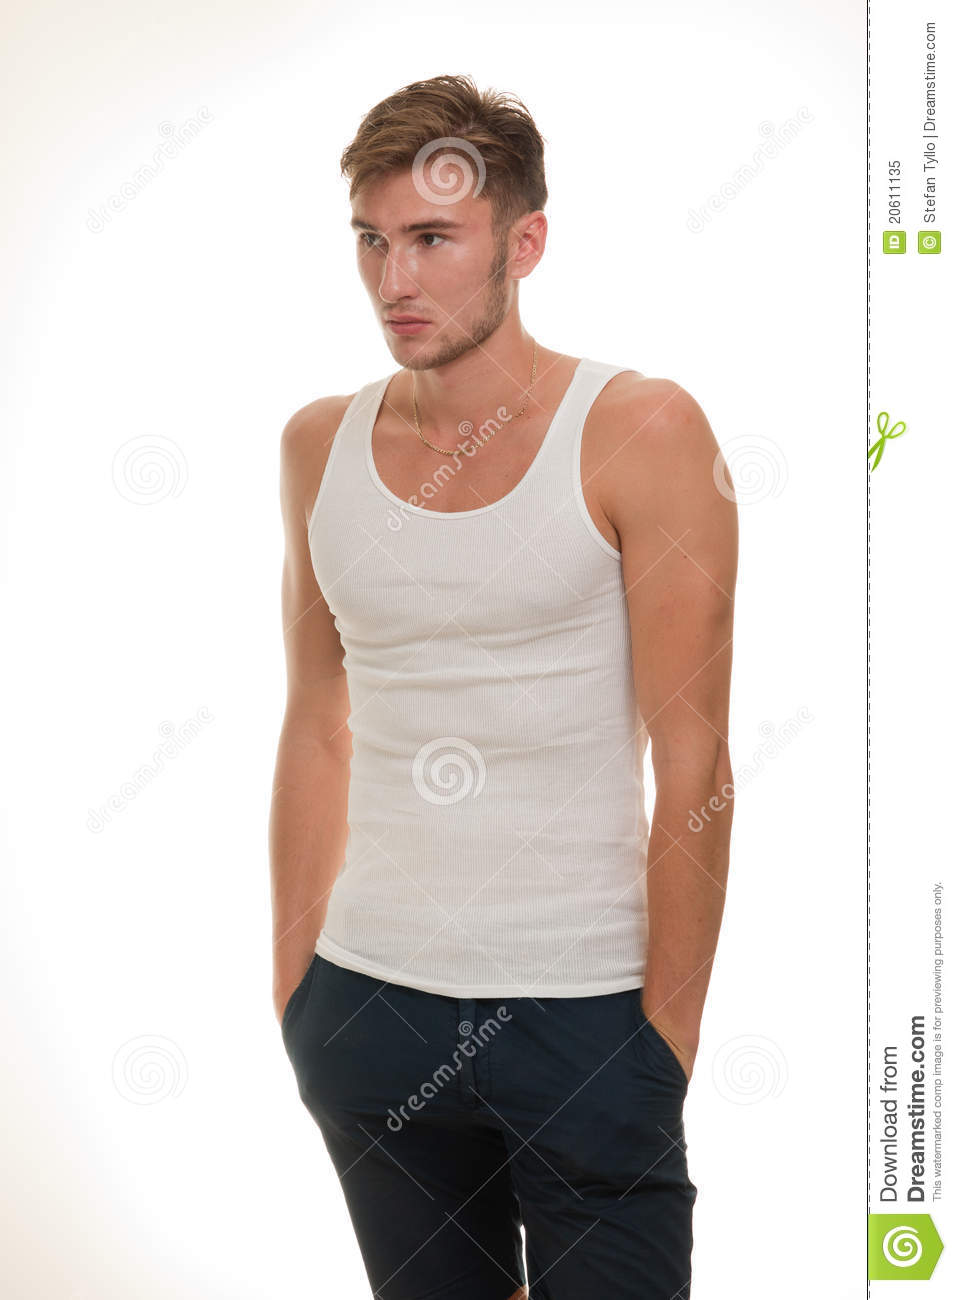 Male Model In White T-shirt Stock Image - Image of blond ...